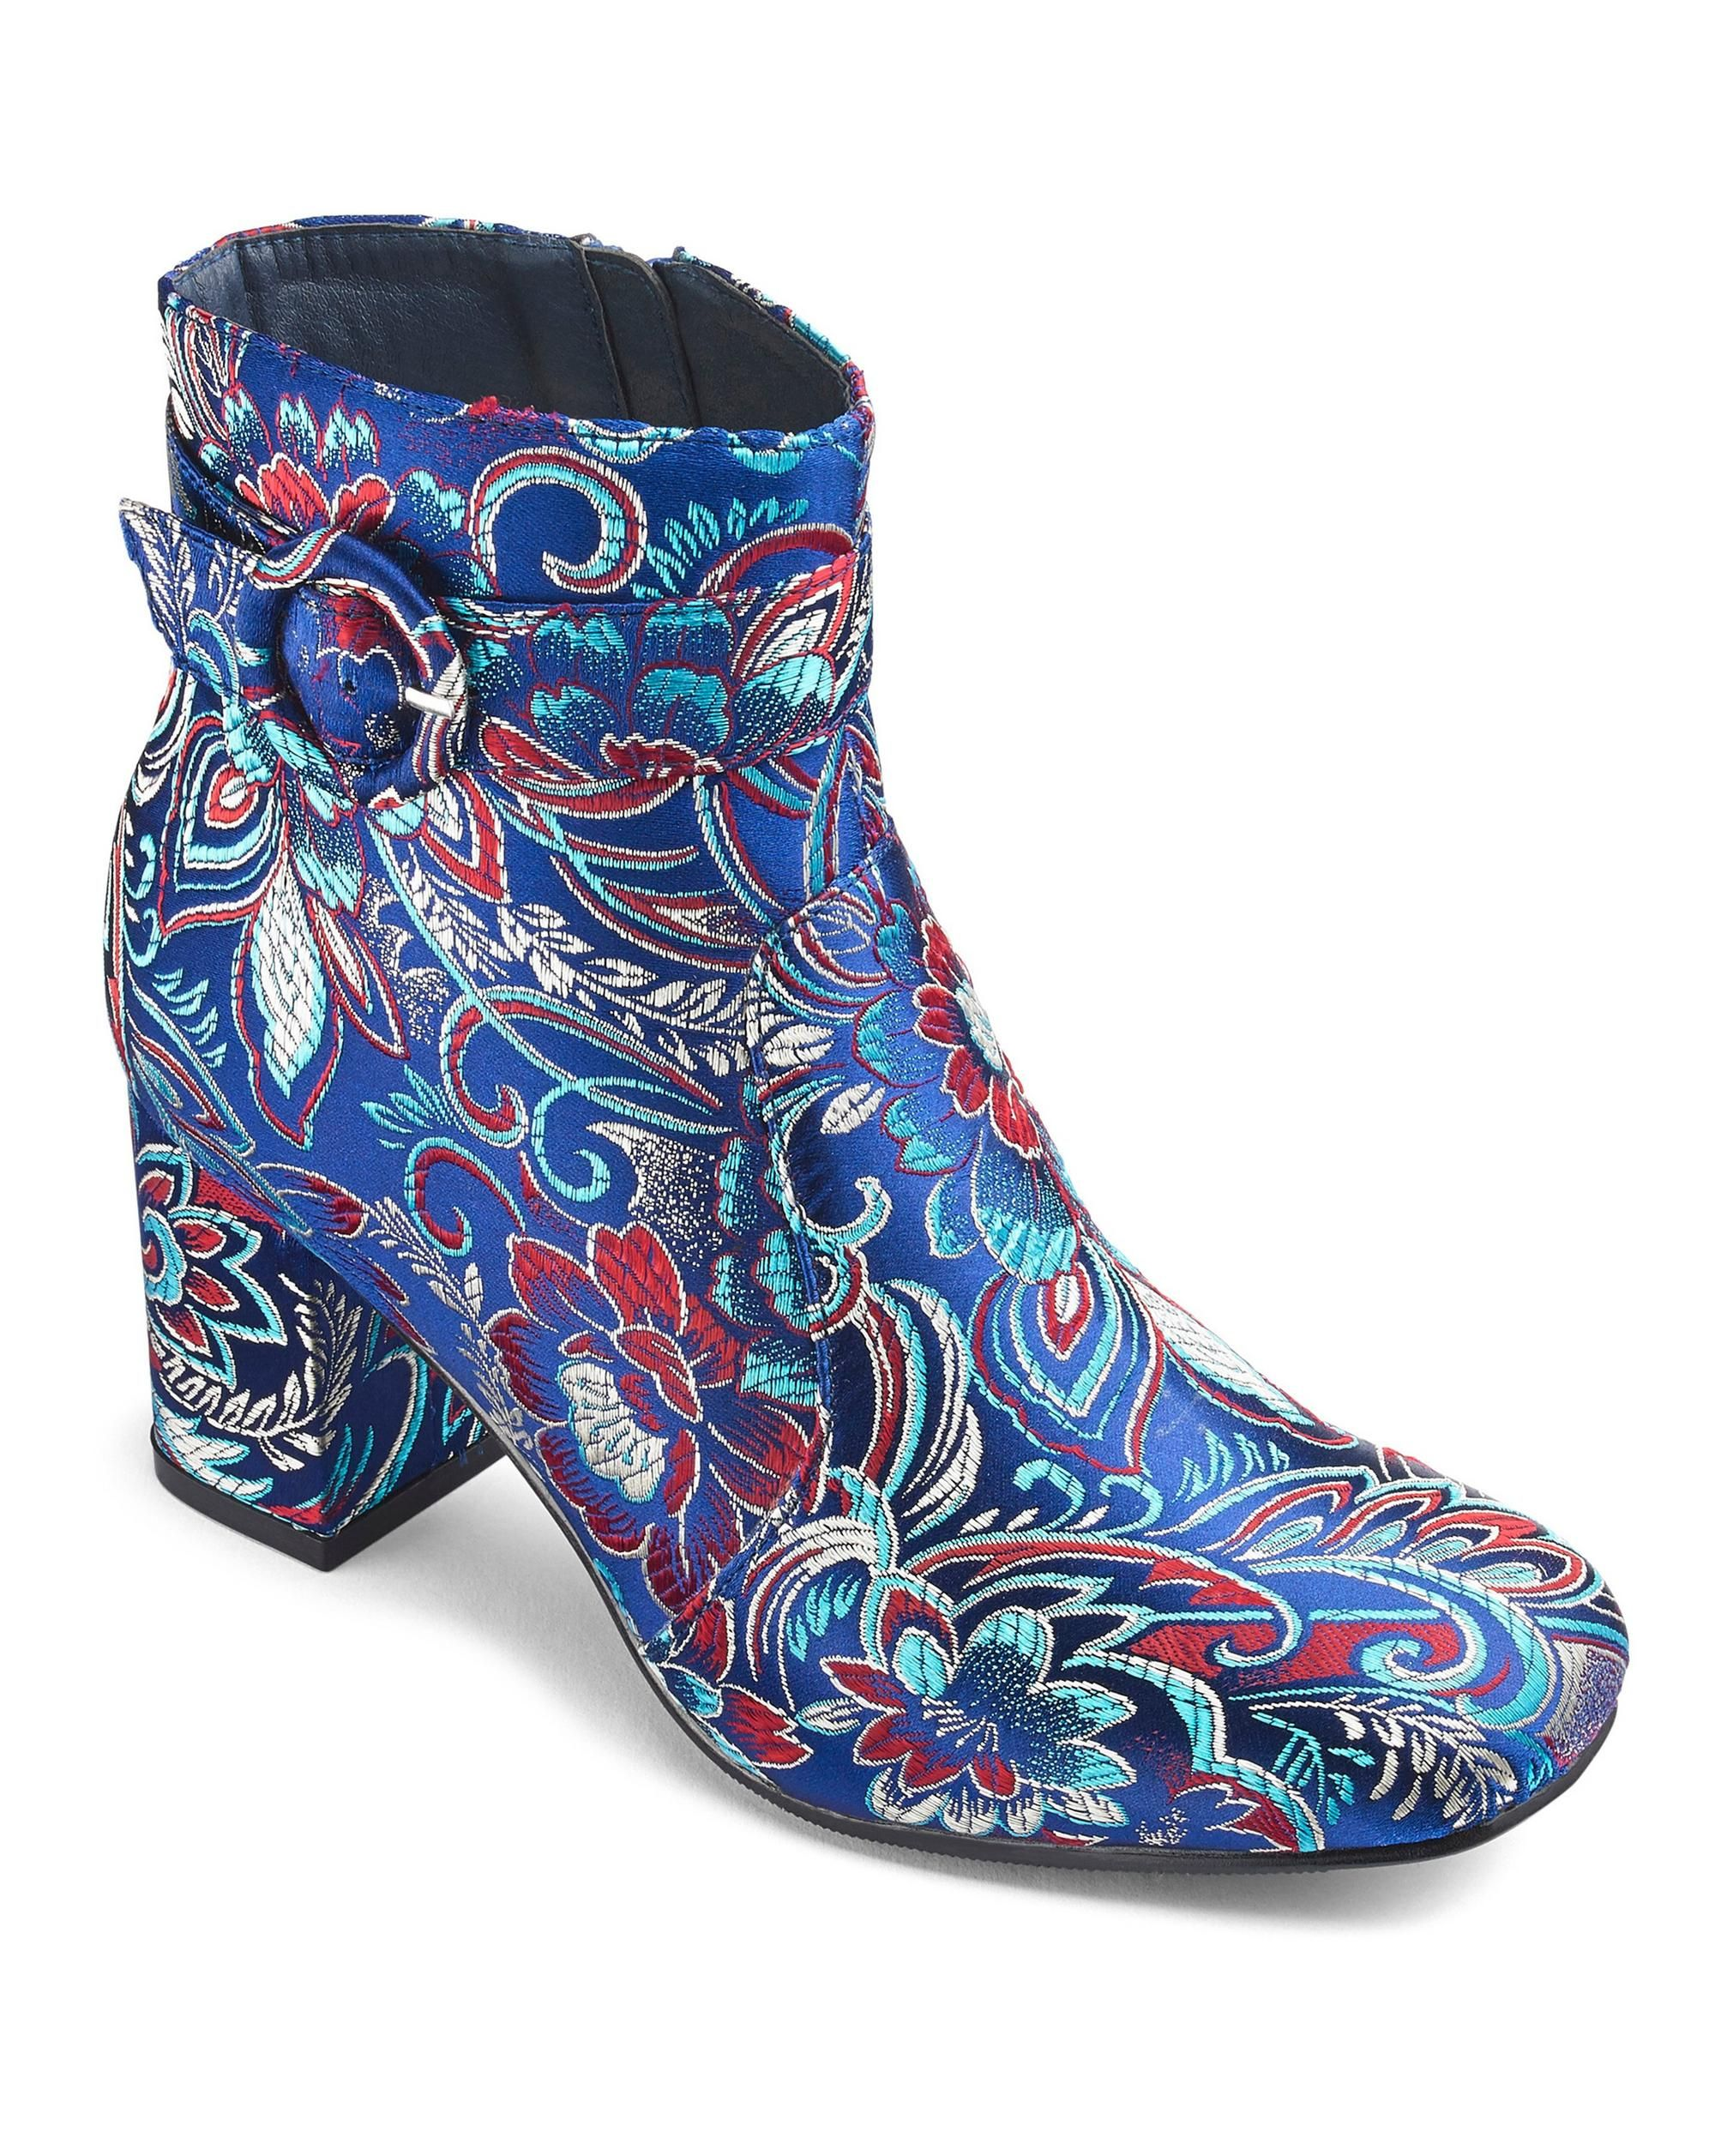 60s 70s Vintage Style Shoes Ankle Boots Vintage Style Shoes Vintage Inspired Shoes Boots